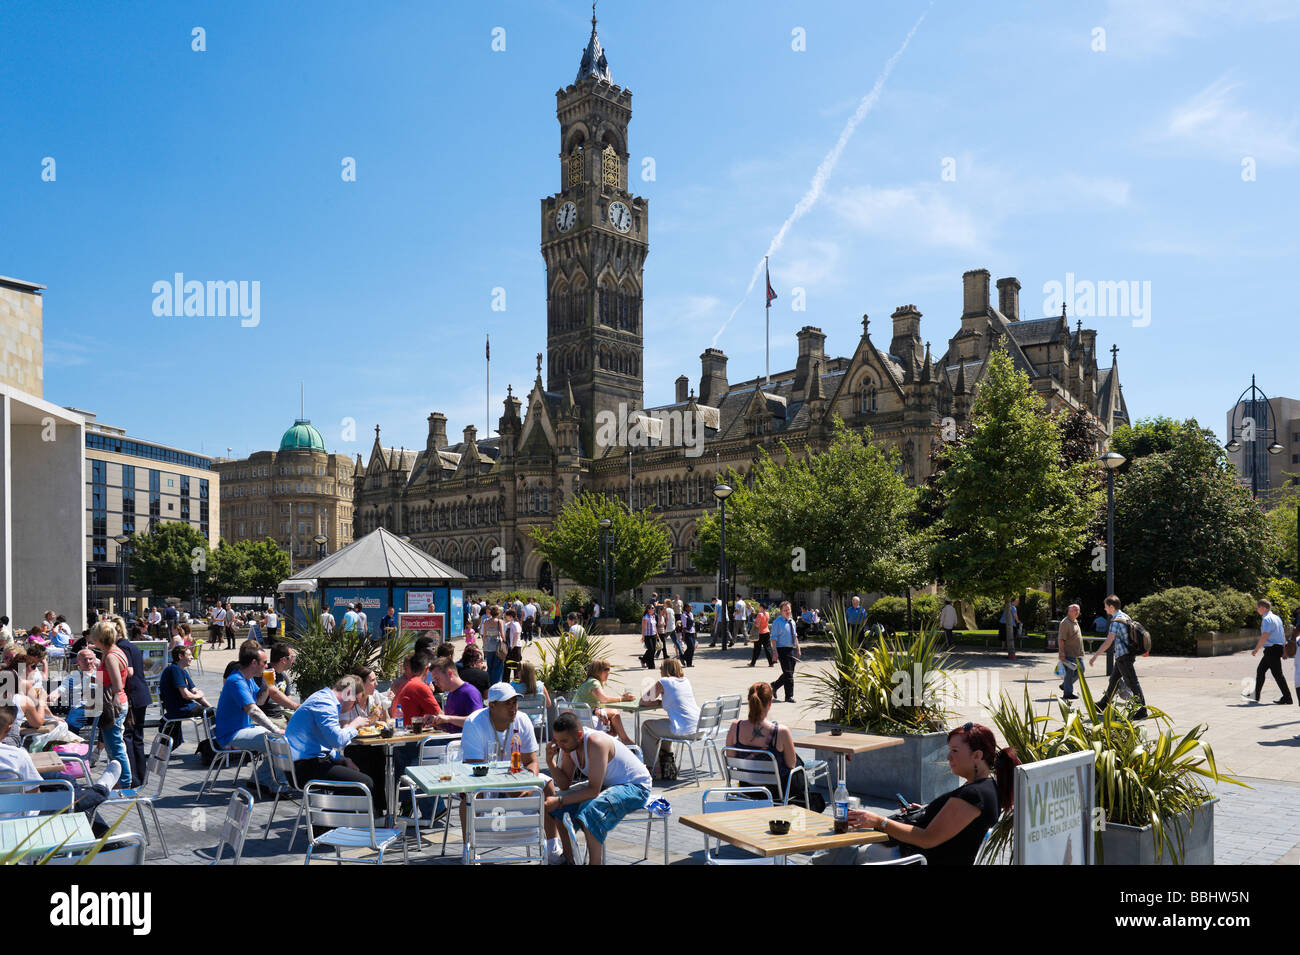 Cafe in front of City Hall, Centenary Square, Bradford, West Yorkshire, England - Stock Image